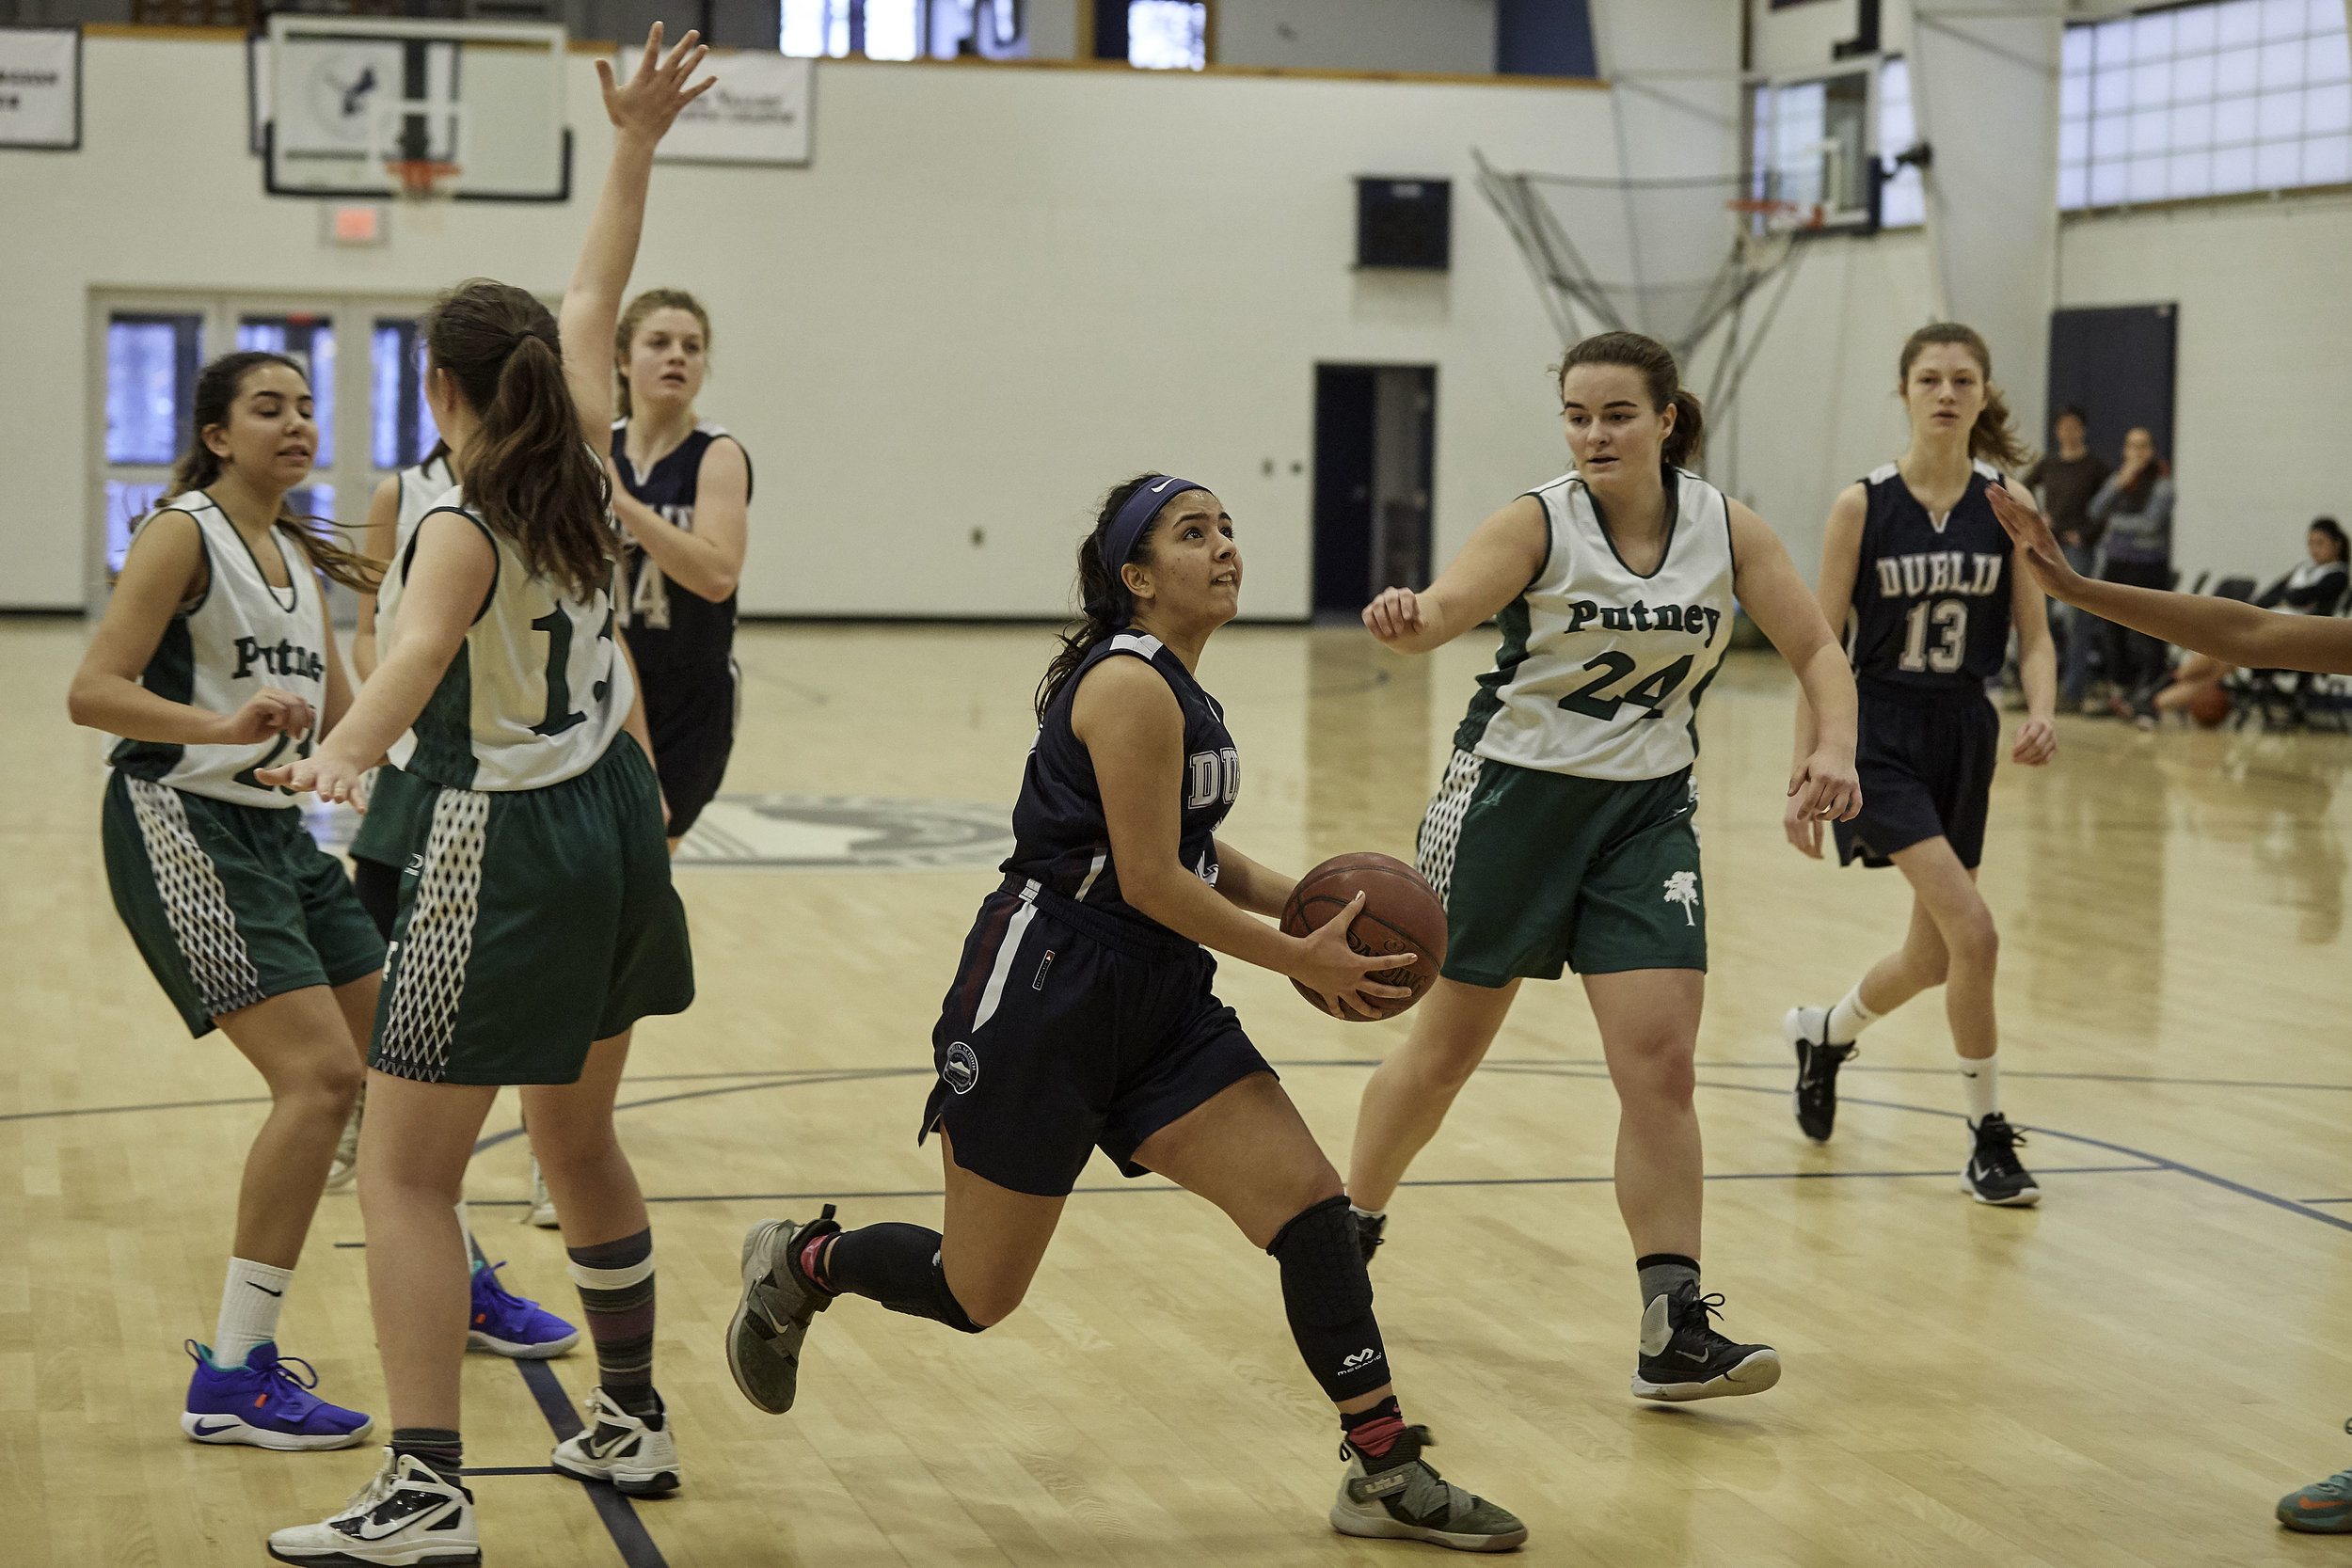 Basketball vs Putney School, February 9, 2019 - 167410.jpg